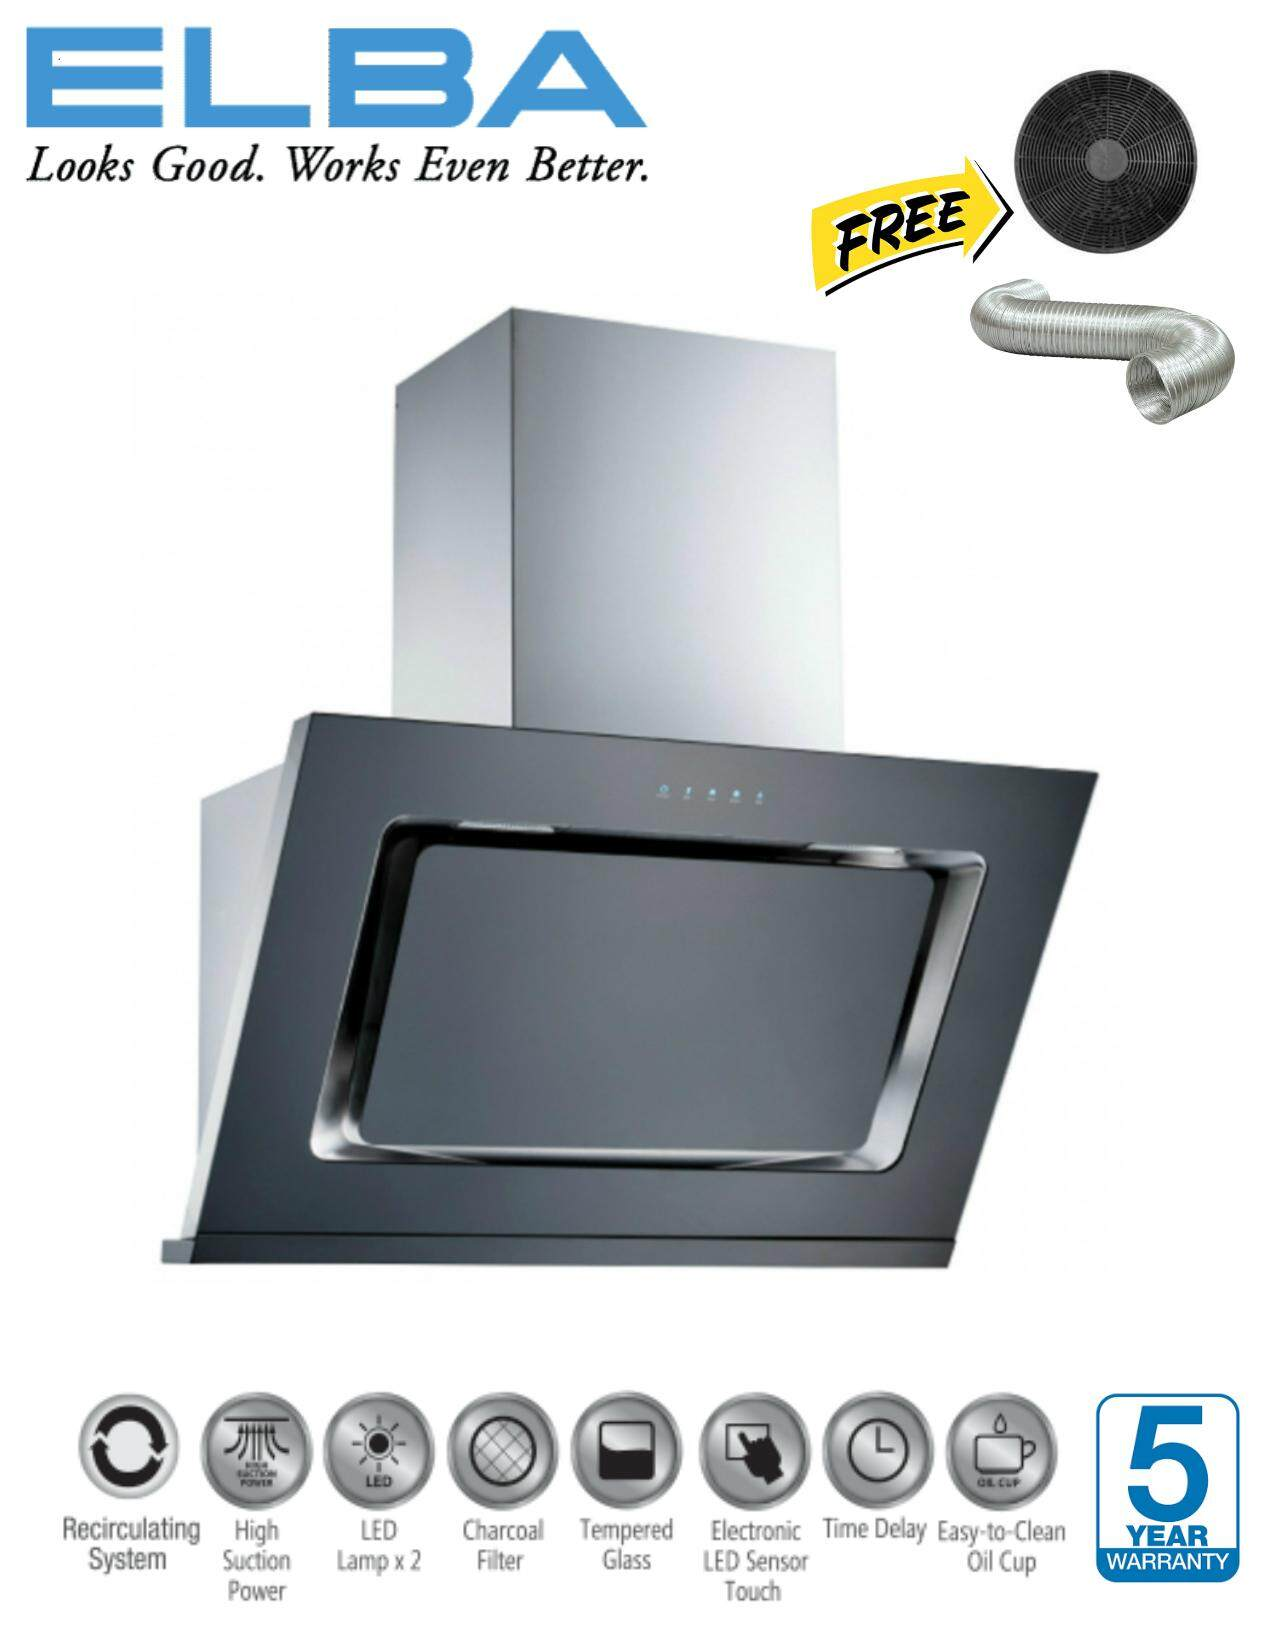 Ready Stock Elba Eh E9122st Bk Kitchen Chimney Hood 1400m3